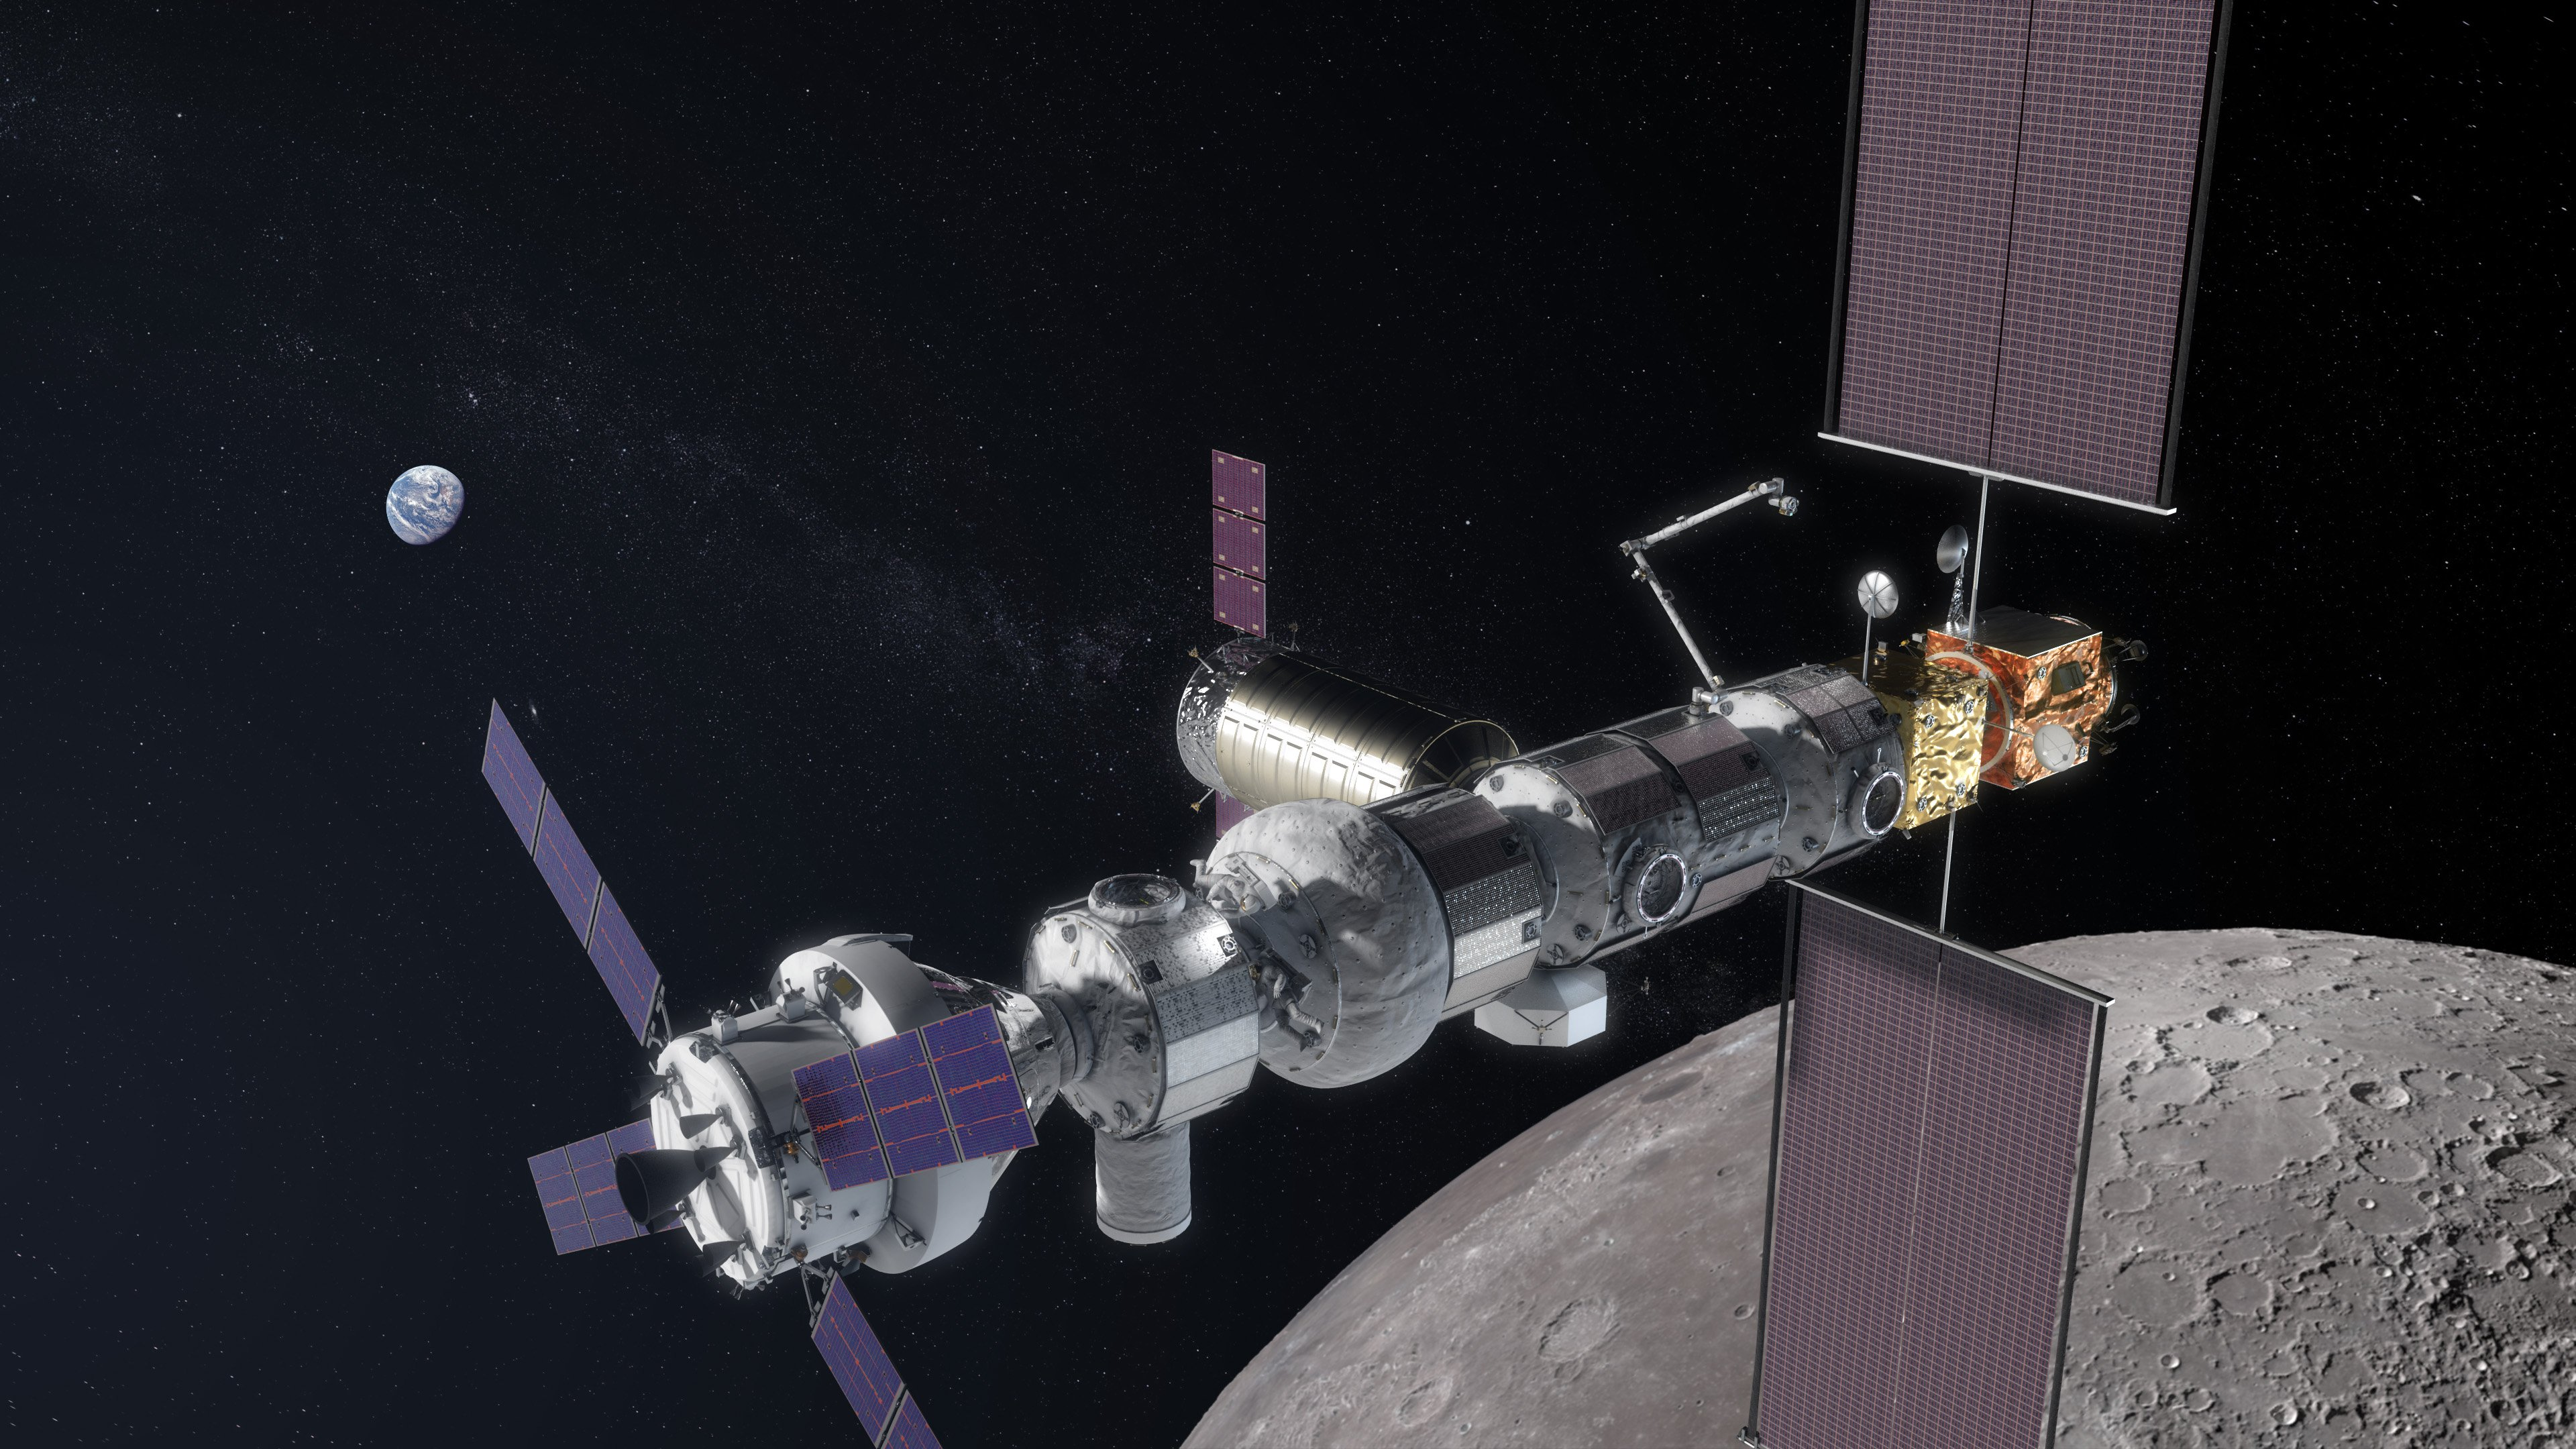 ISS want to close? The United States will launch the lunar station in 2023